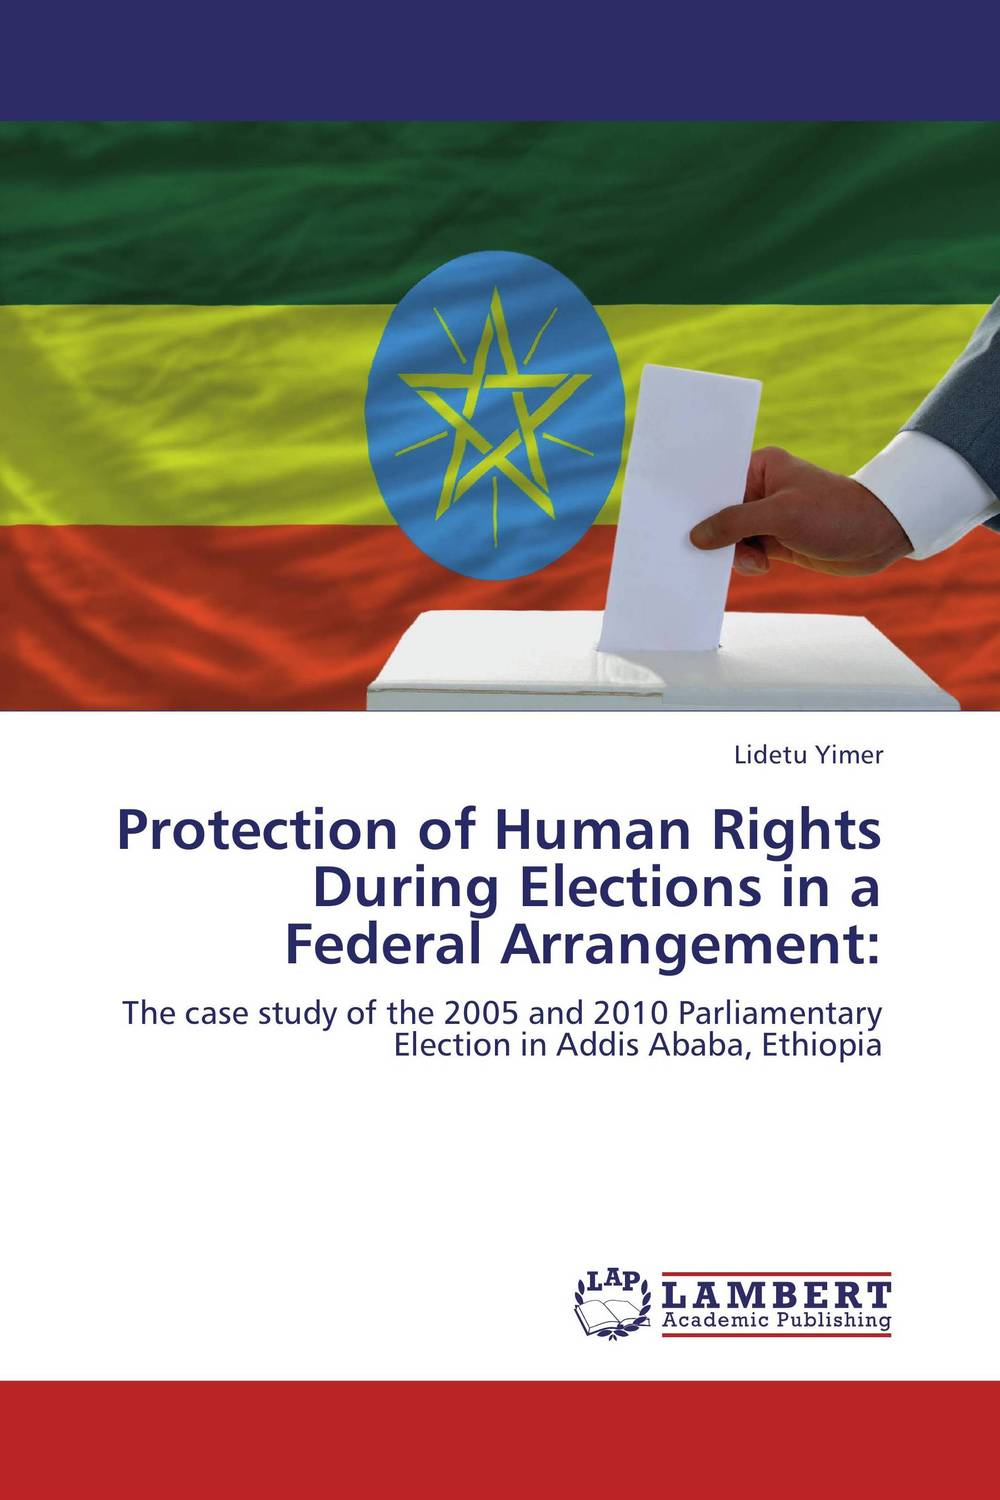 Protection of Human Rights During Elections in a Federal Arrangement: foreign policy as a means for advancing human rights